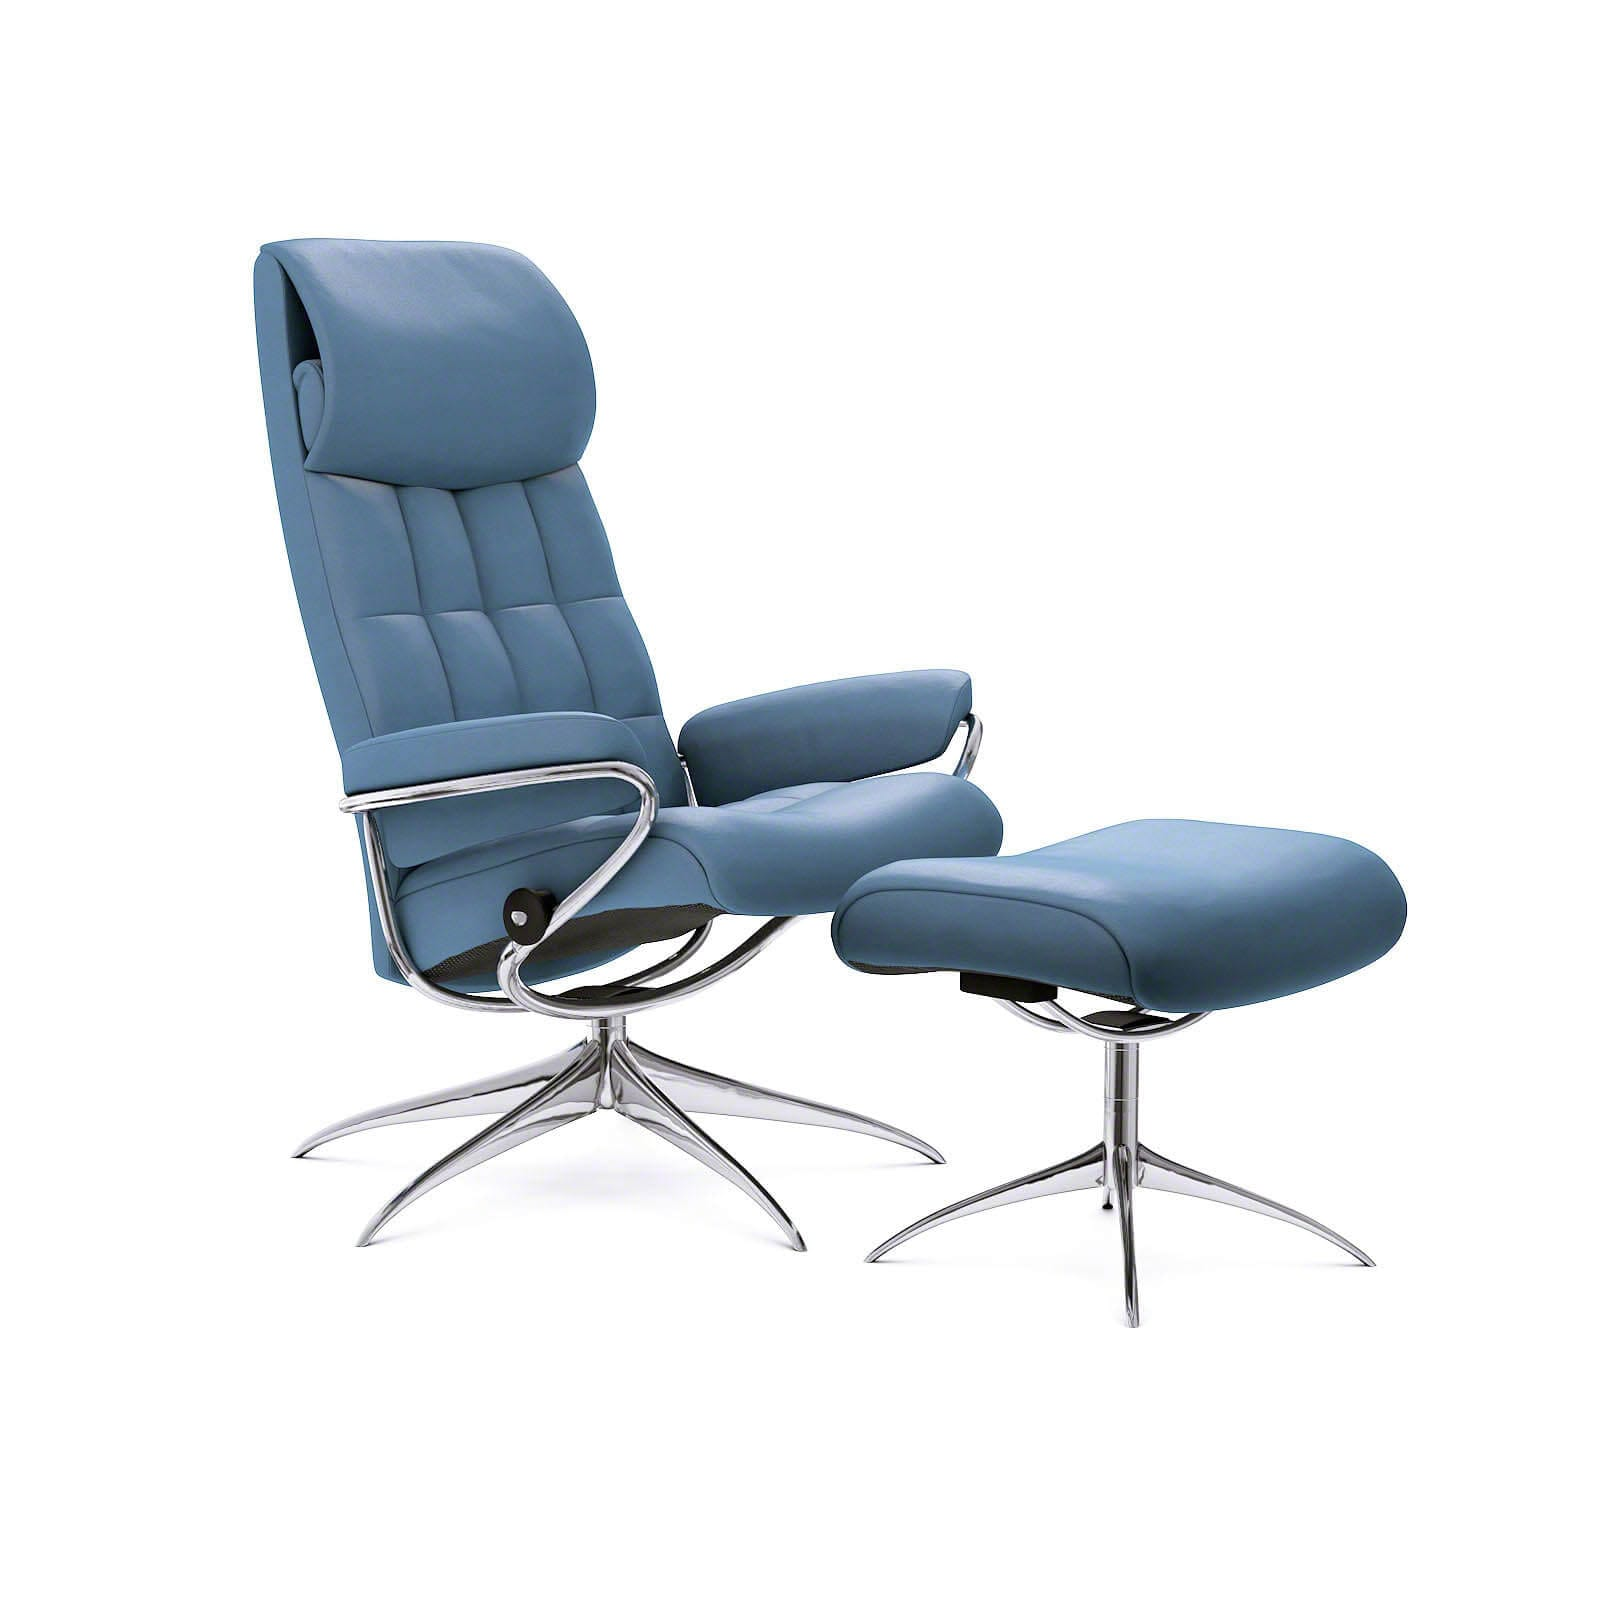 Stressless Mayfair Preis Stressless London Sessel Mit Hoher Lehne Paloma Sparrow Blue